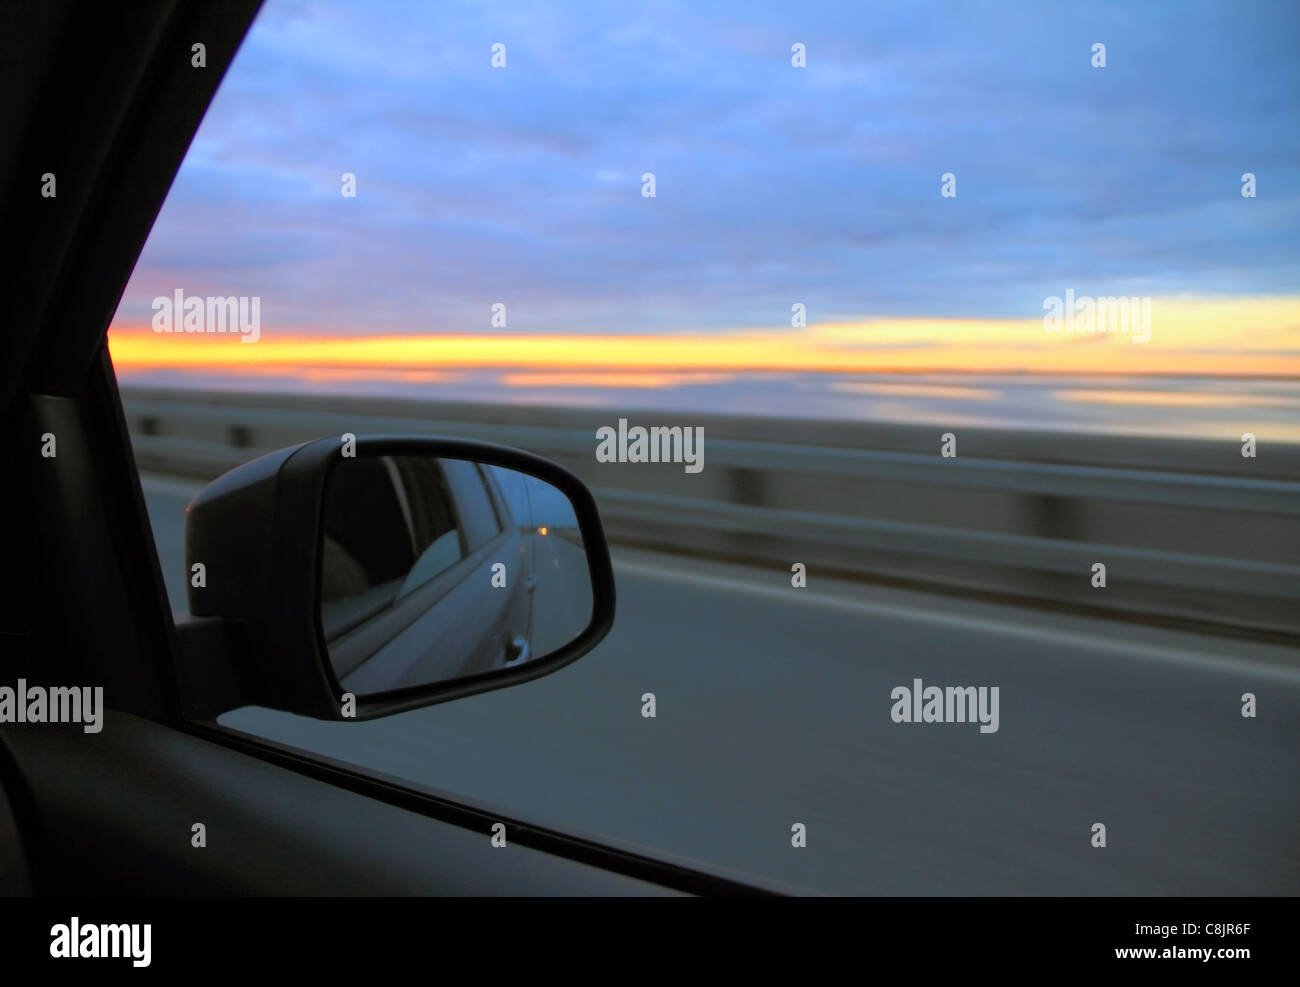 view in the rearview mirror on the car on highway - Stock Image